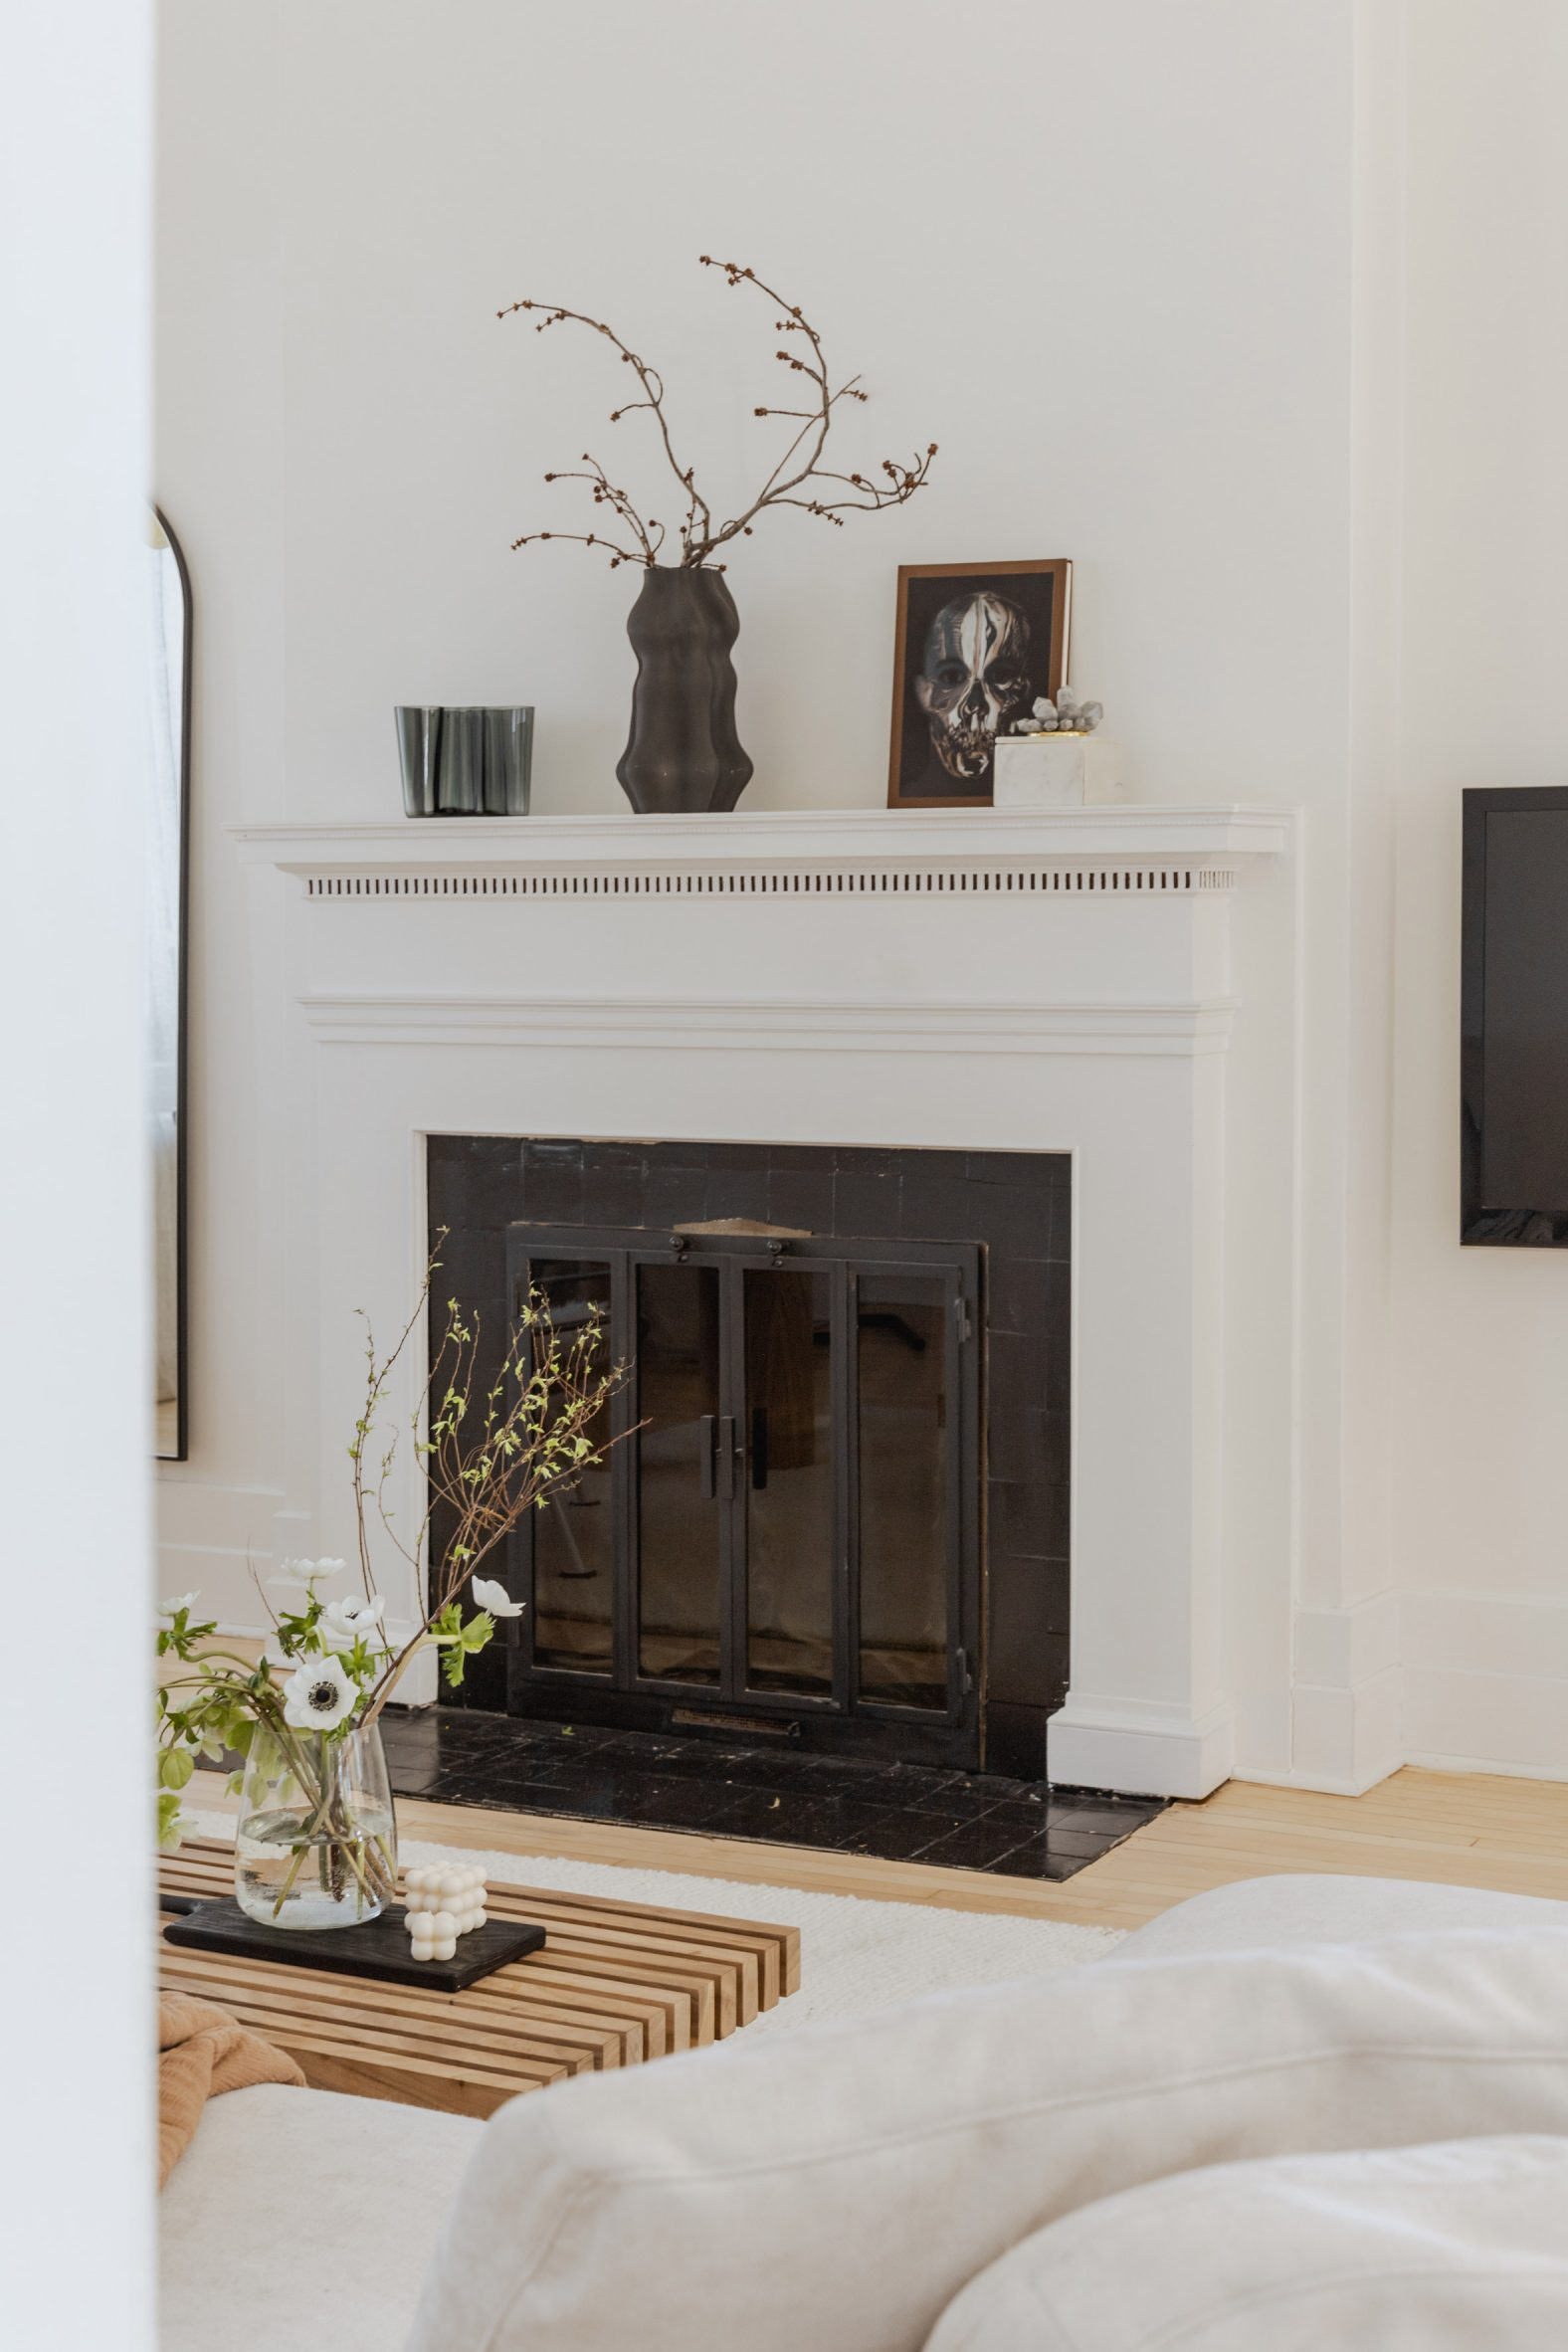 Fireplace with art objects